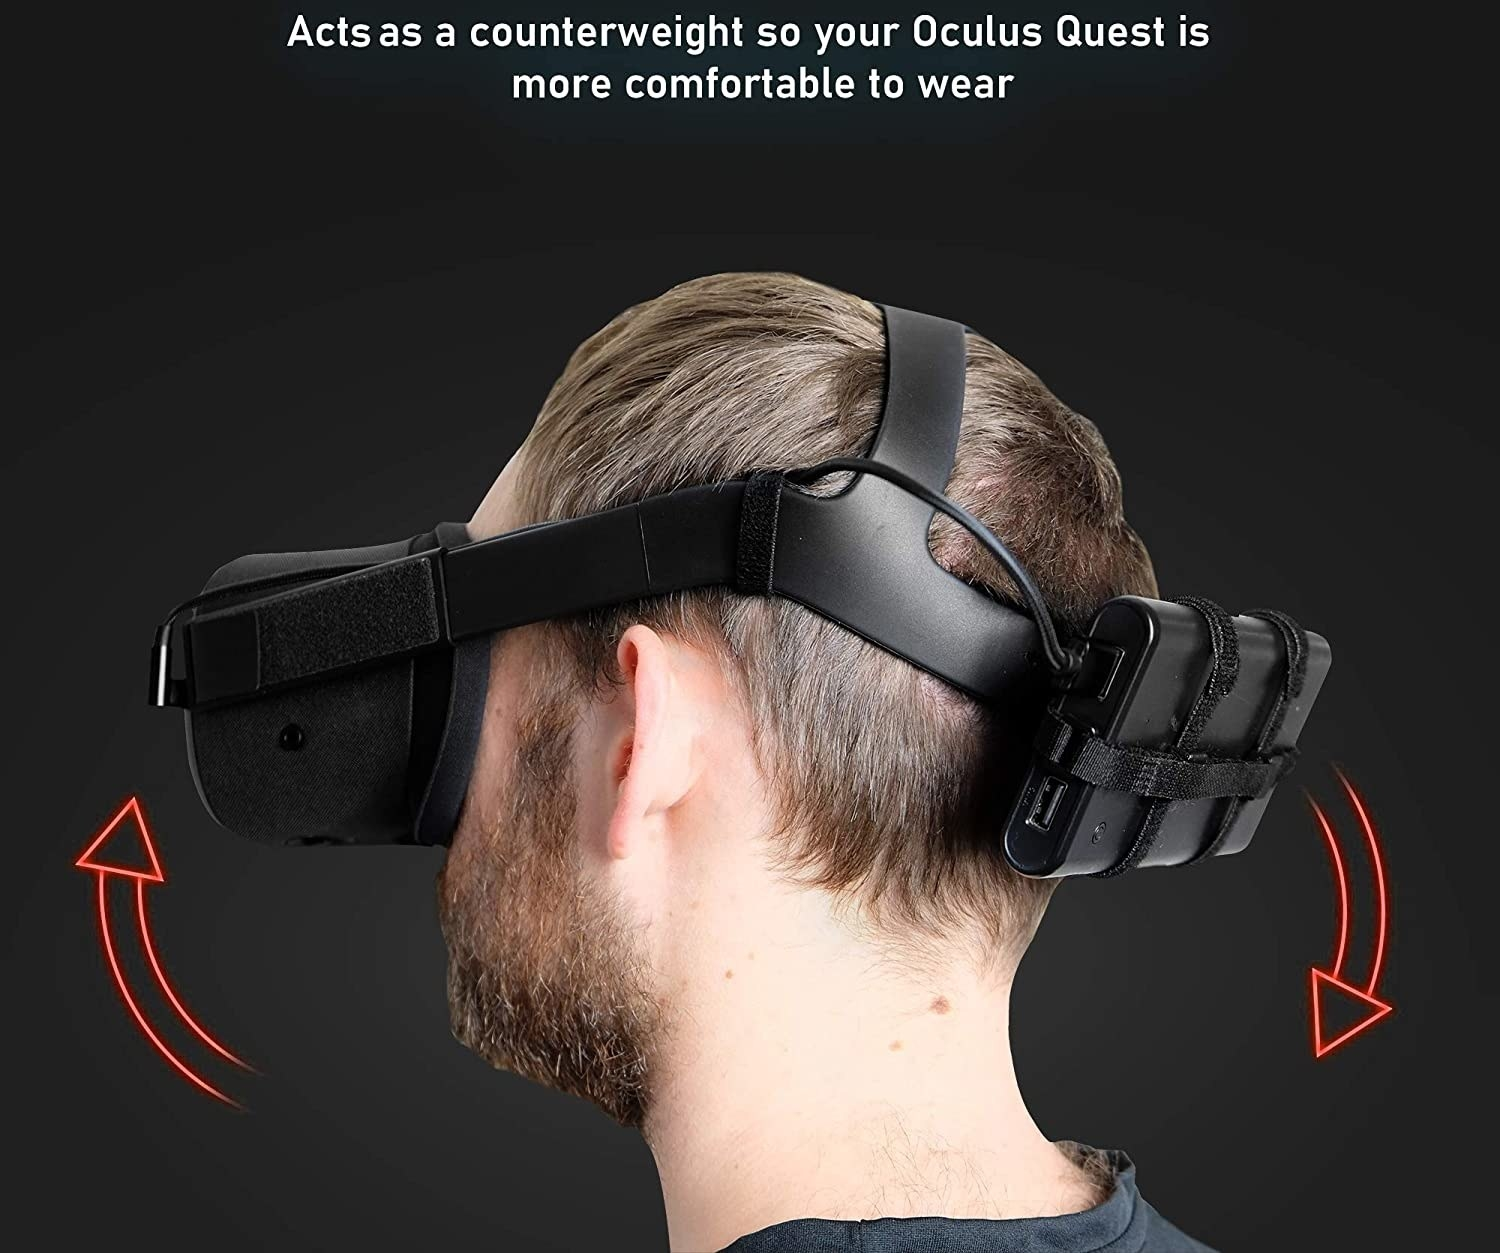 Model wearing the battery pack on the back of the Quest head strap